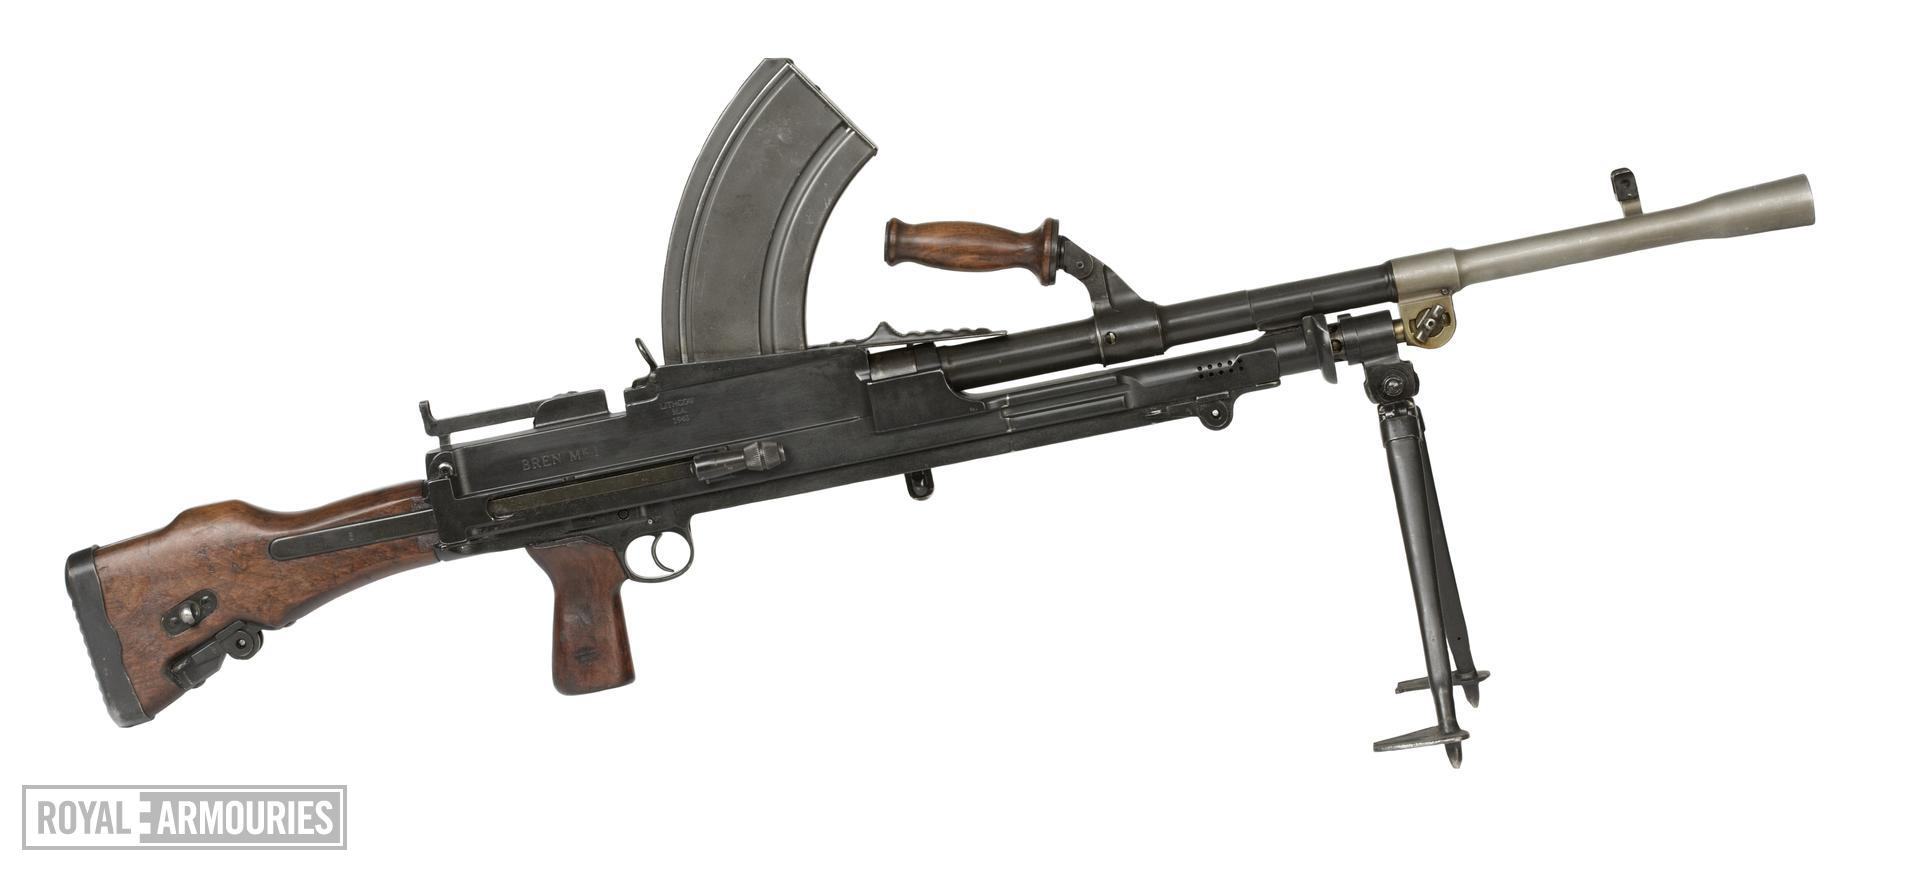 Centrefire automatic light machine gun - Bren Mk.I